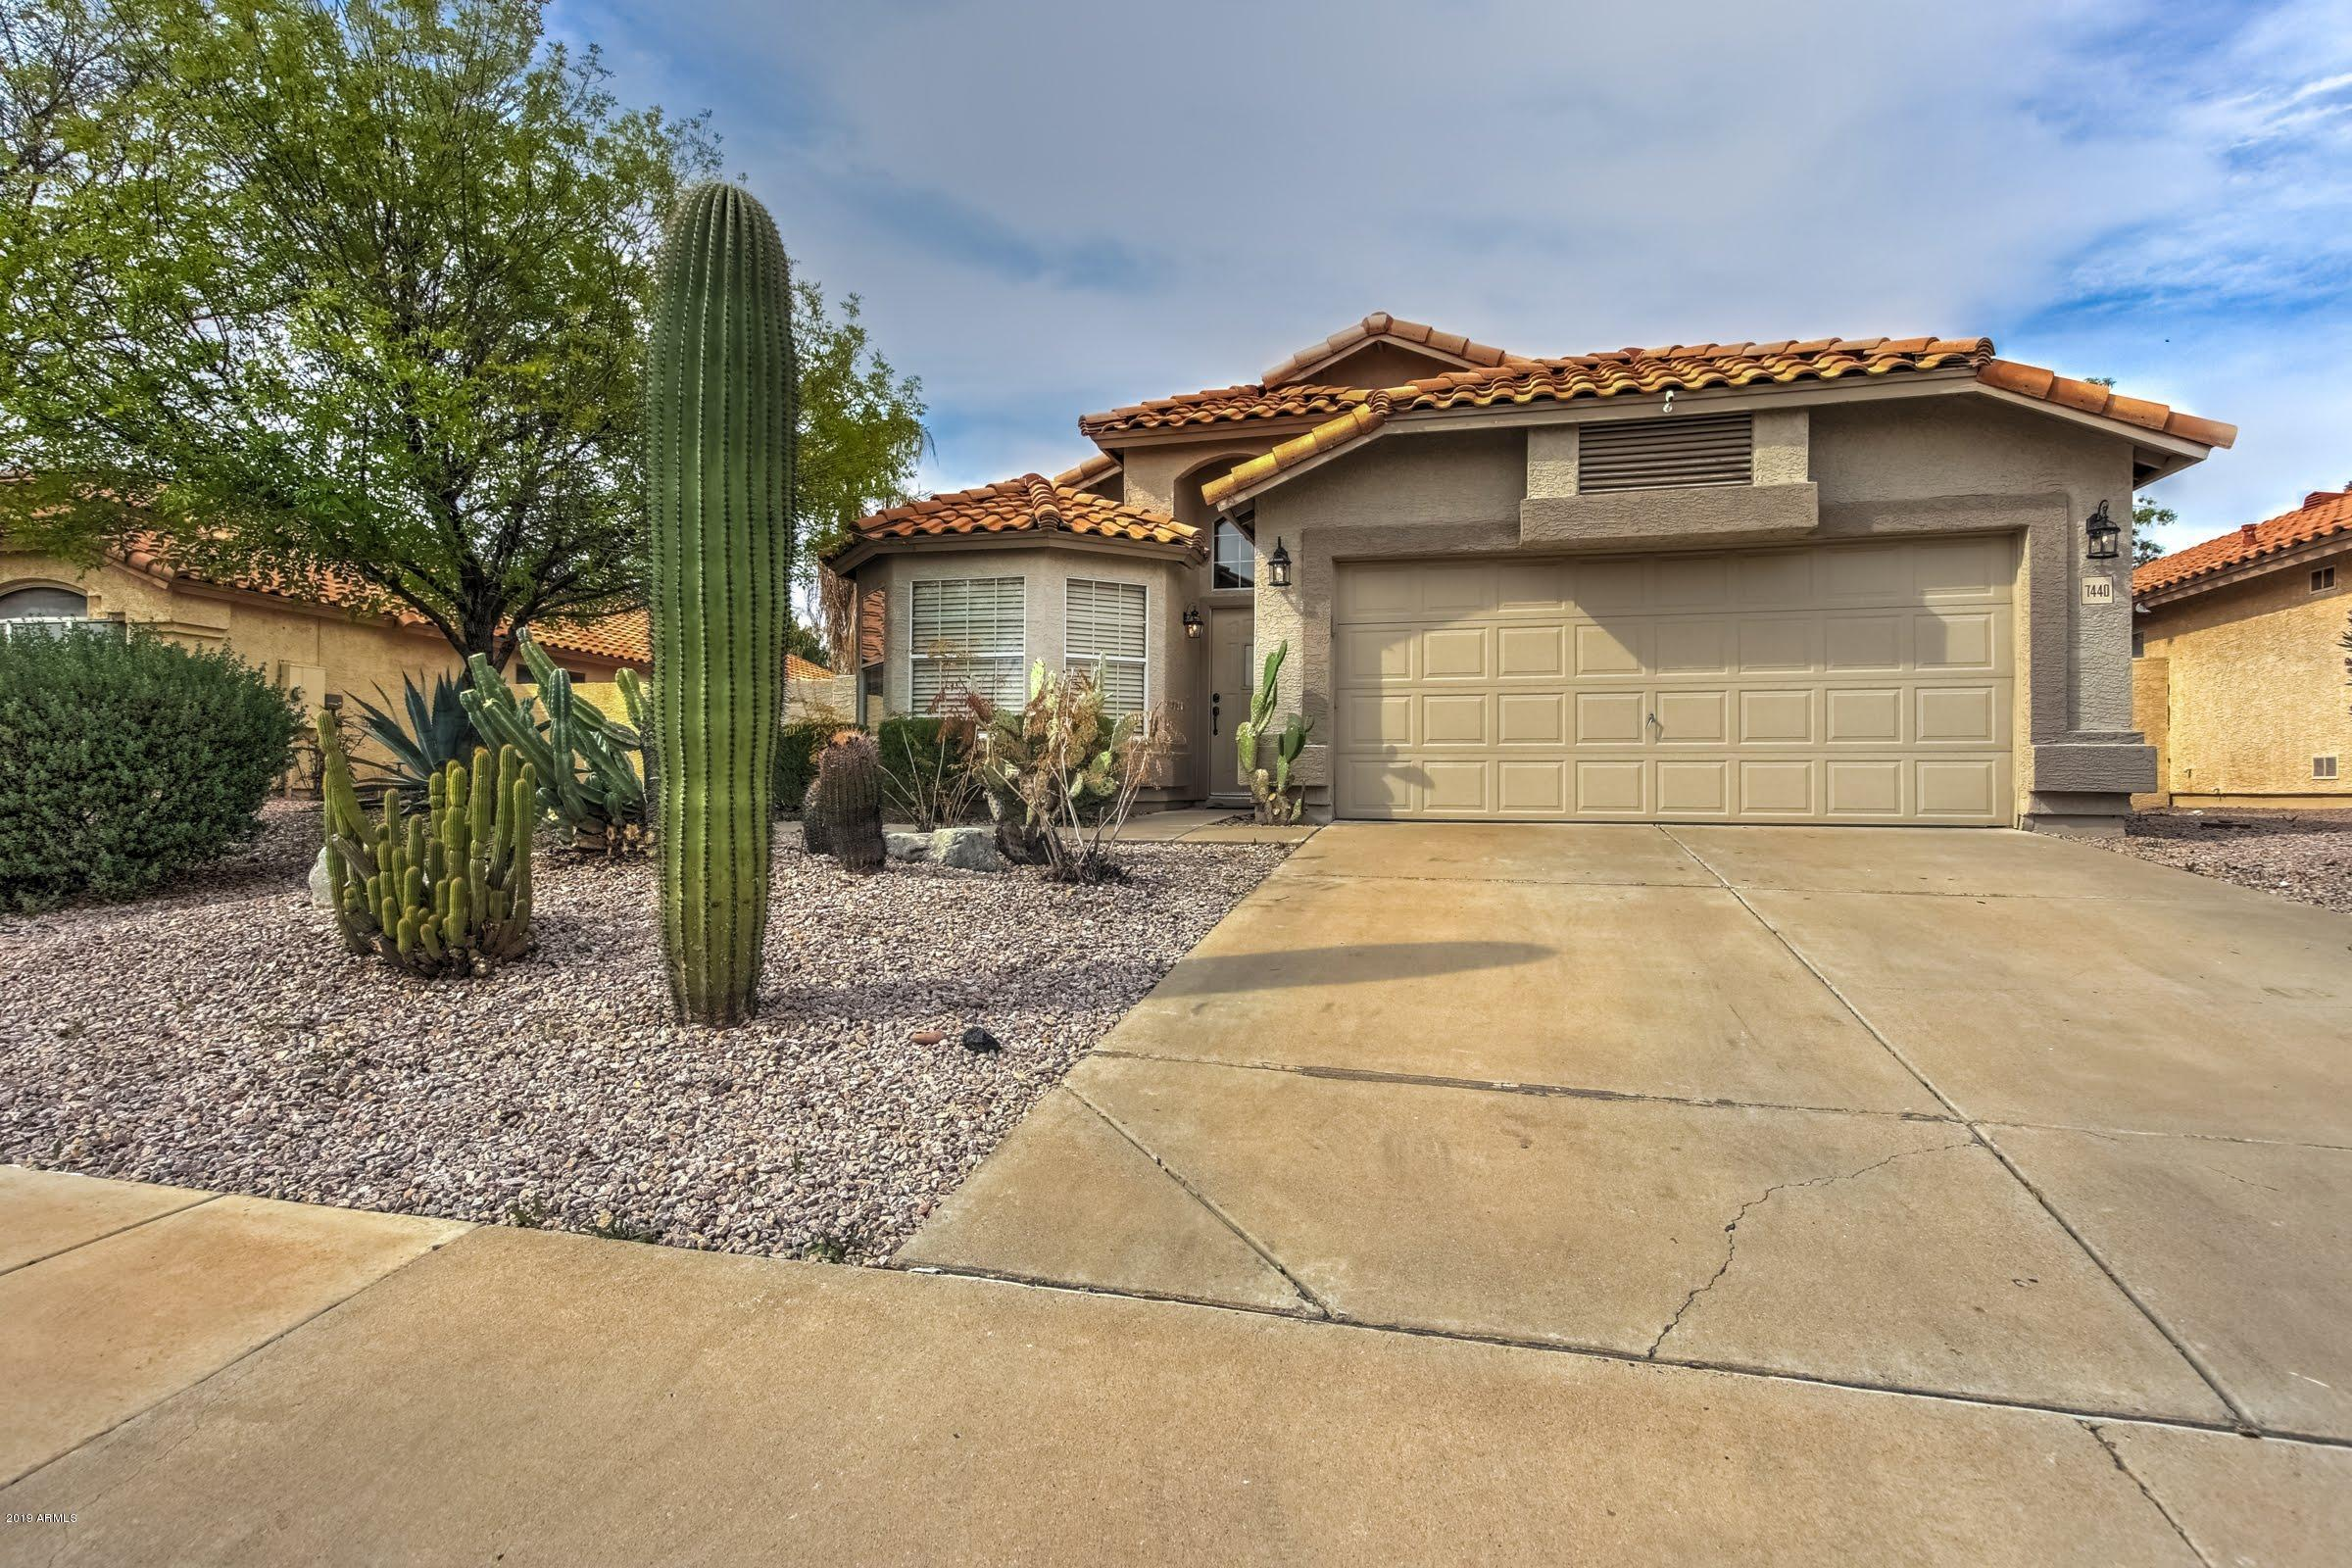 Photo of 7440 E Keats Avenue, Mesa, AZ 85209